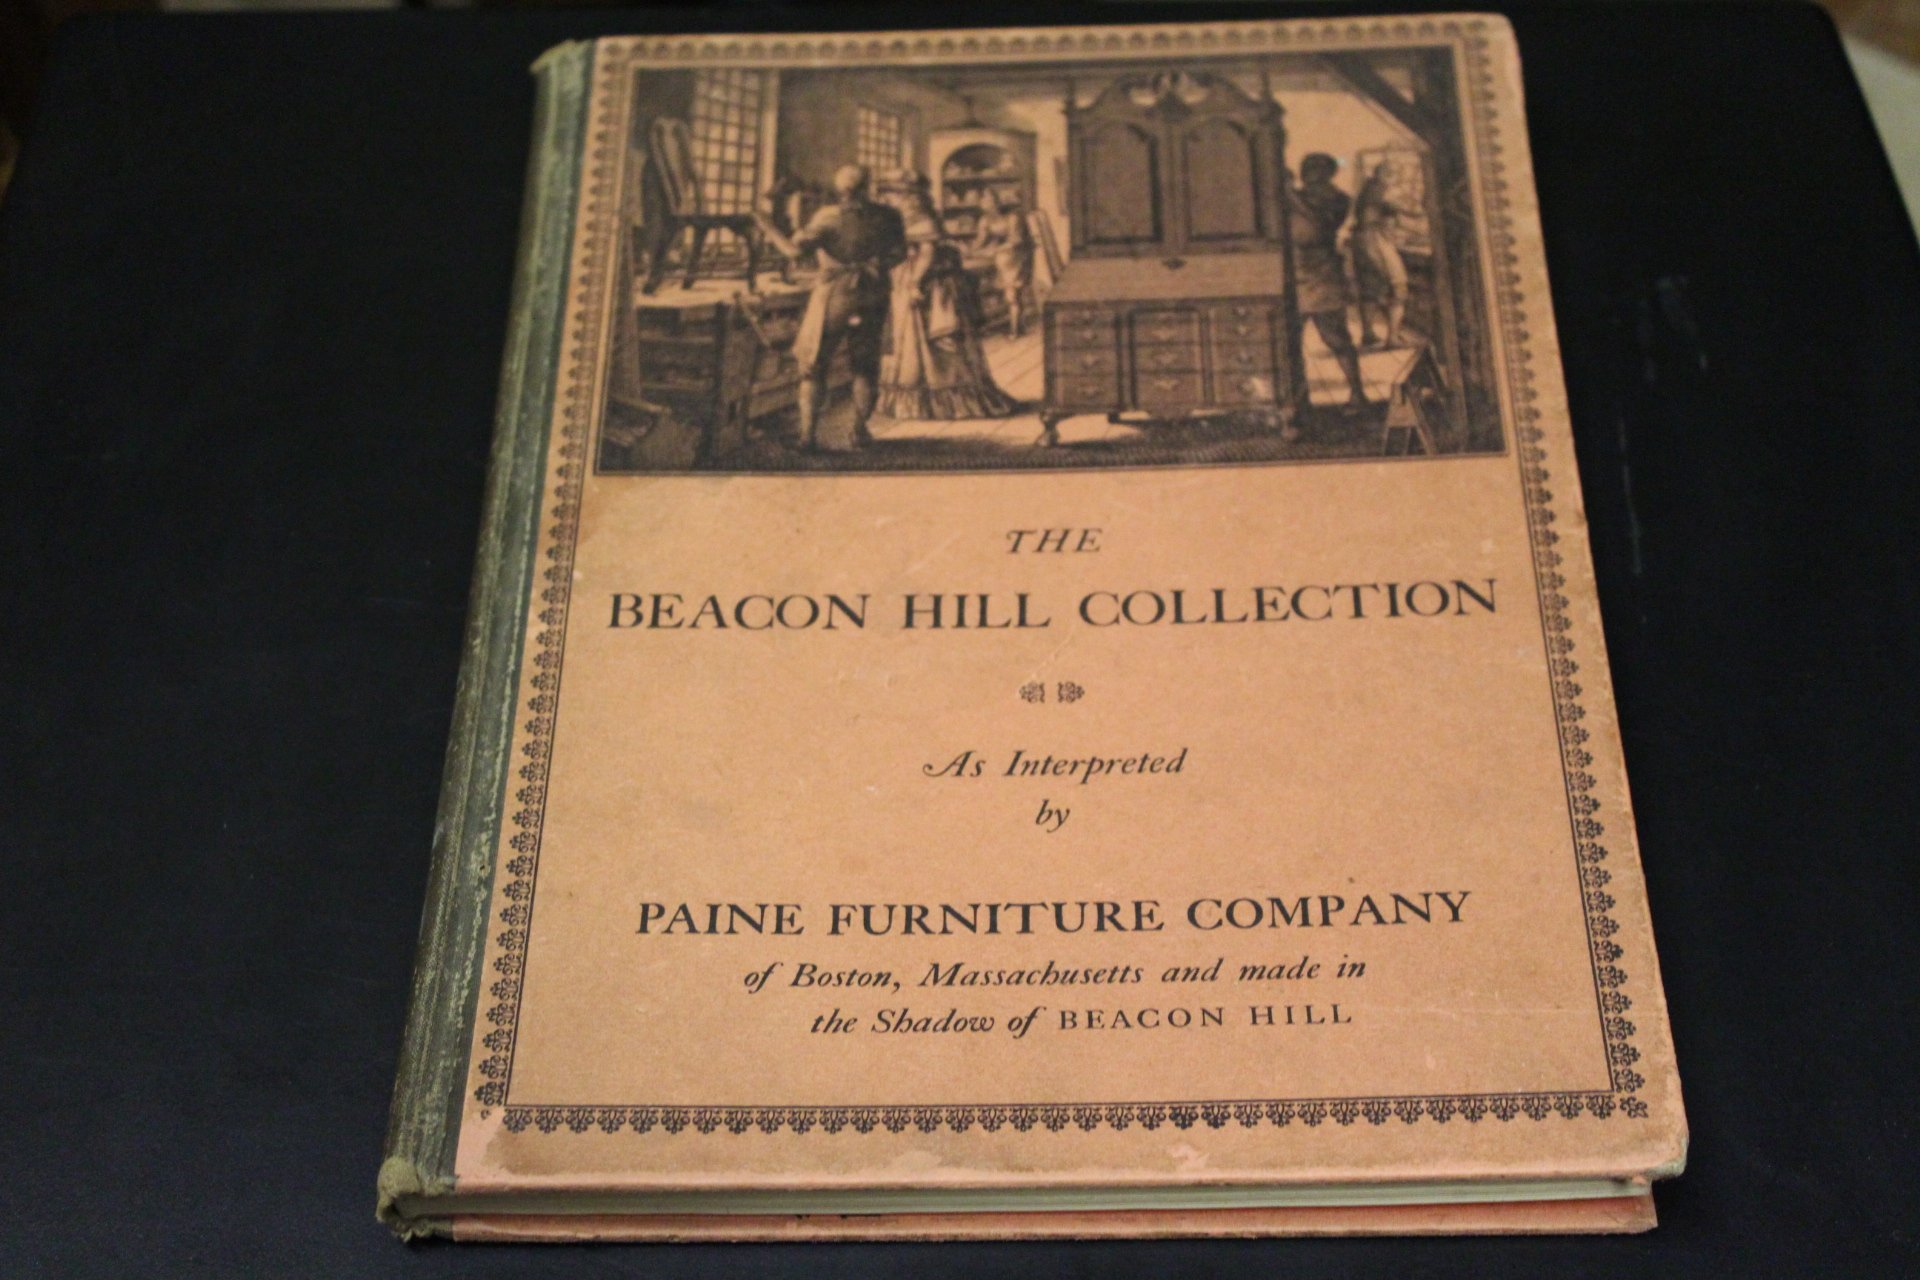 The Beacon Hill Collection As Interpreted By Paine Furniture Company Of  Boston, Massachusettes And Made In The Shadow Of Beacon Hill: Paine  Furniture ...